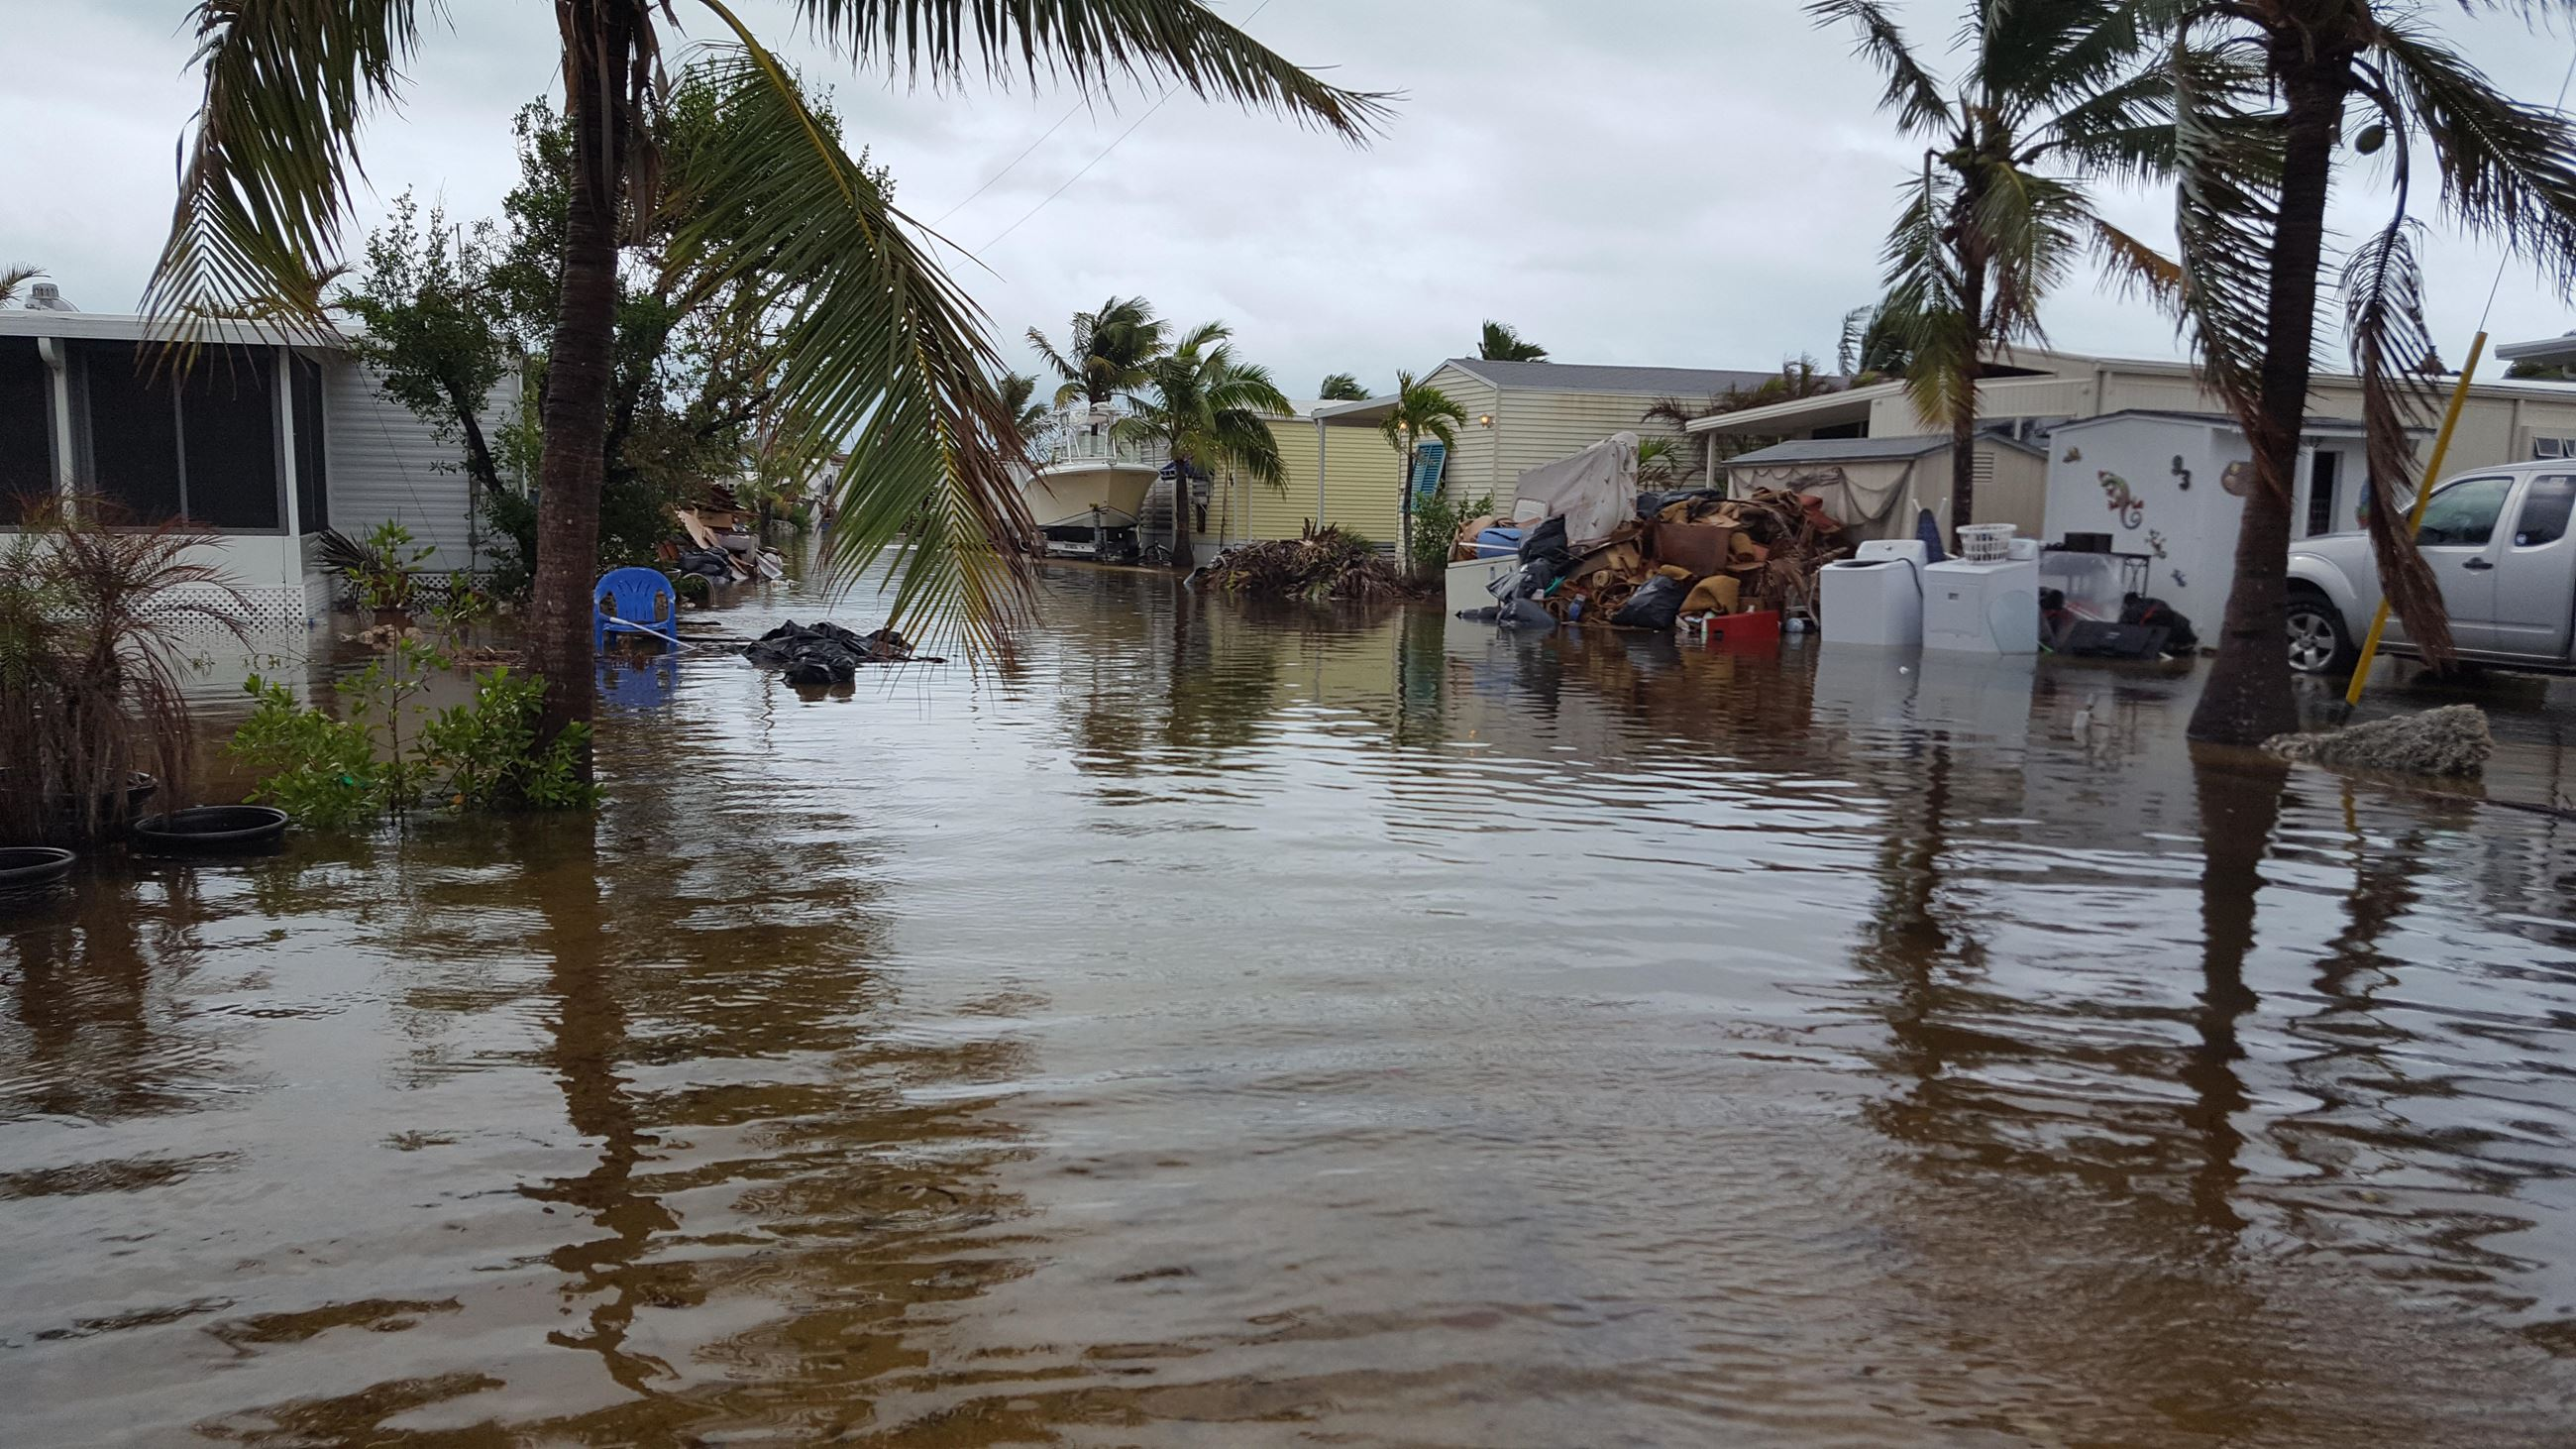 40 Flooded Mobile homes due to King Tides